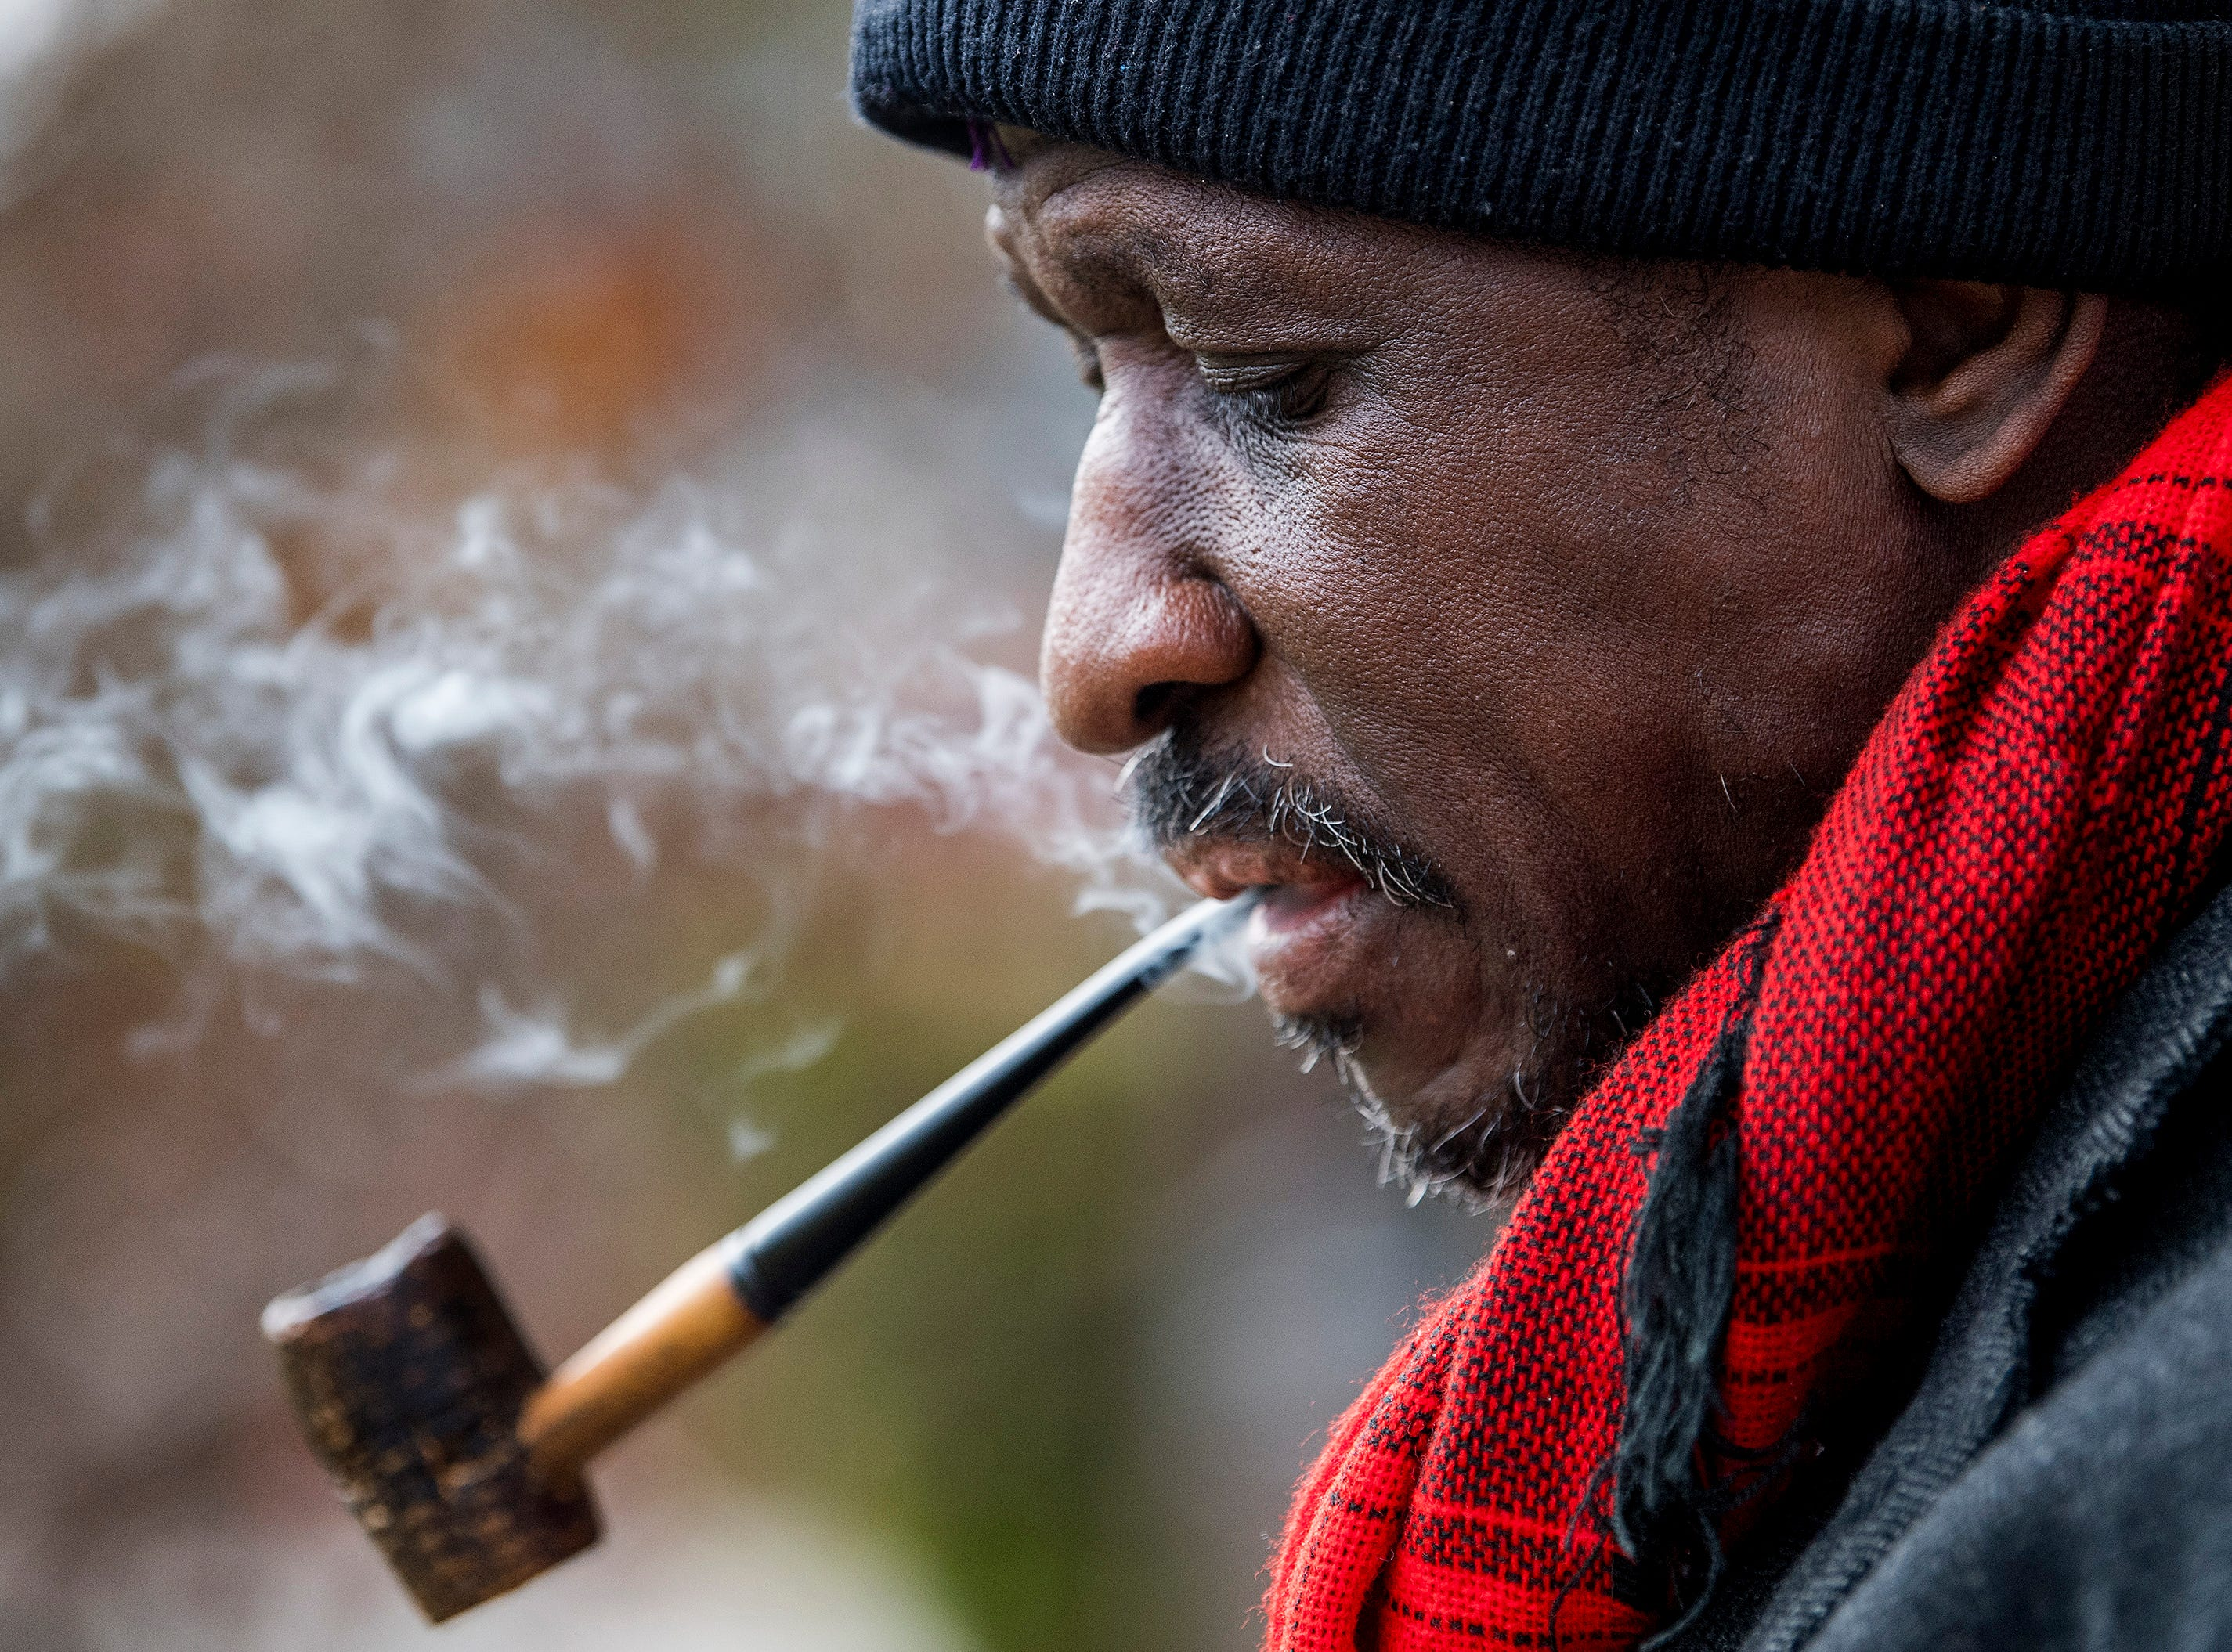 Bishop D.L. Muhammad smokes his pipe as he waits for his grandchildren to get out of school so he can walk them home on Tuesday afternoon February 15, 2018.